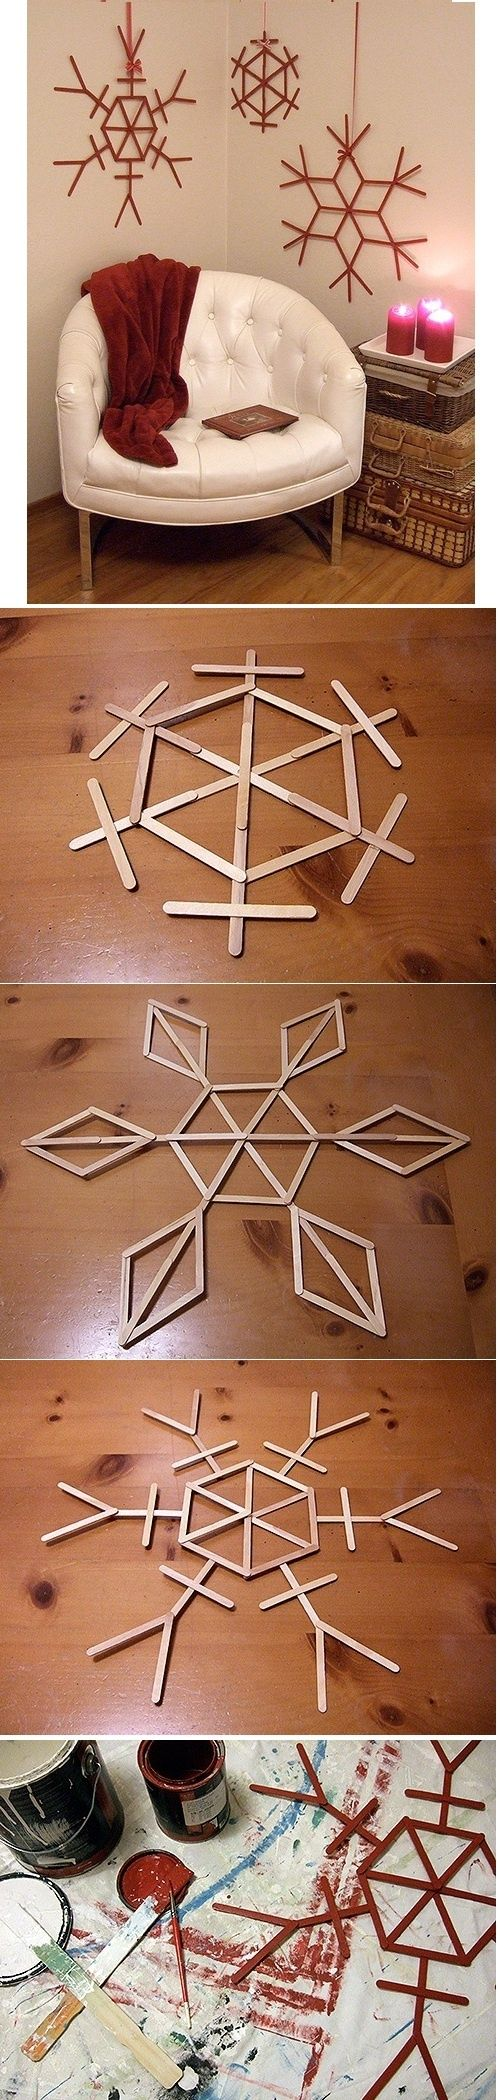 DIY Snowflake Popsicle Ornament will do these but make them silver instead